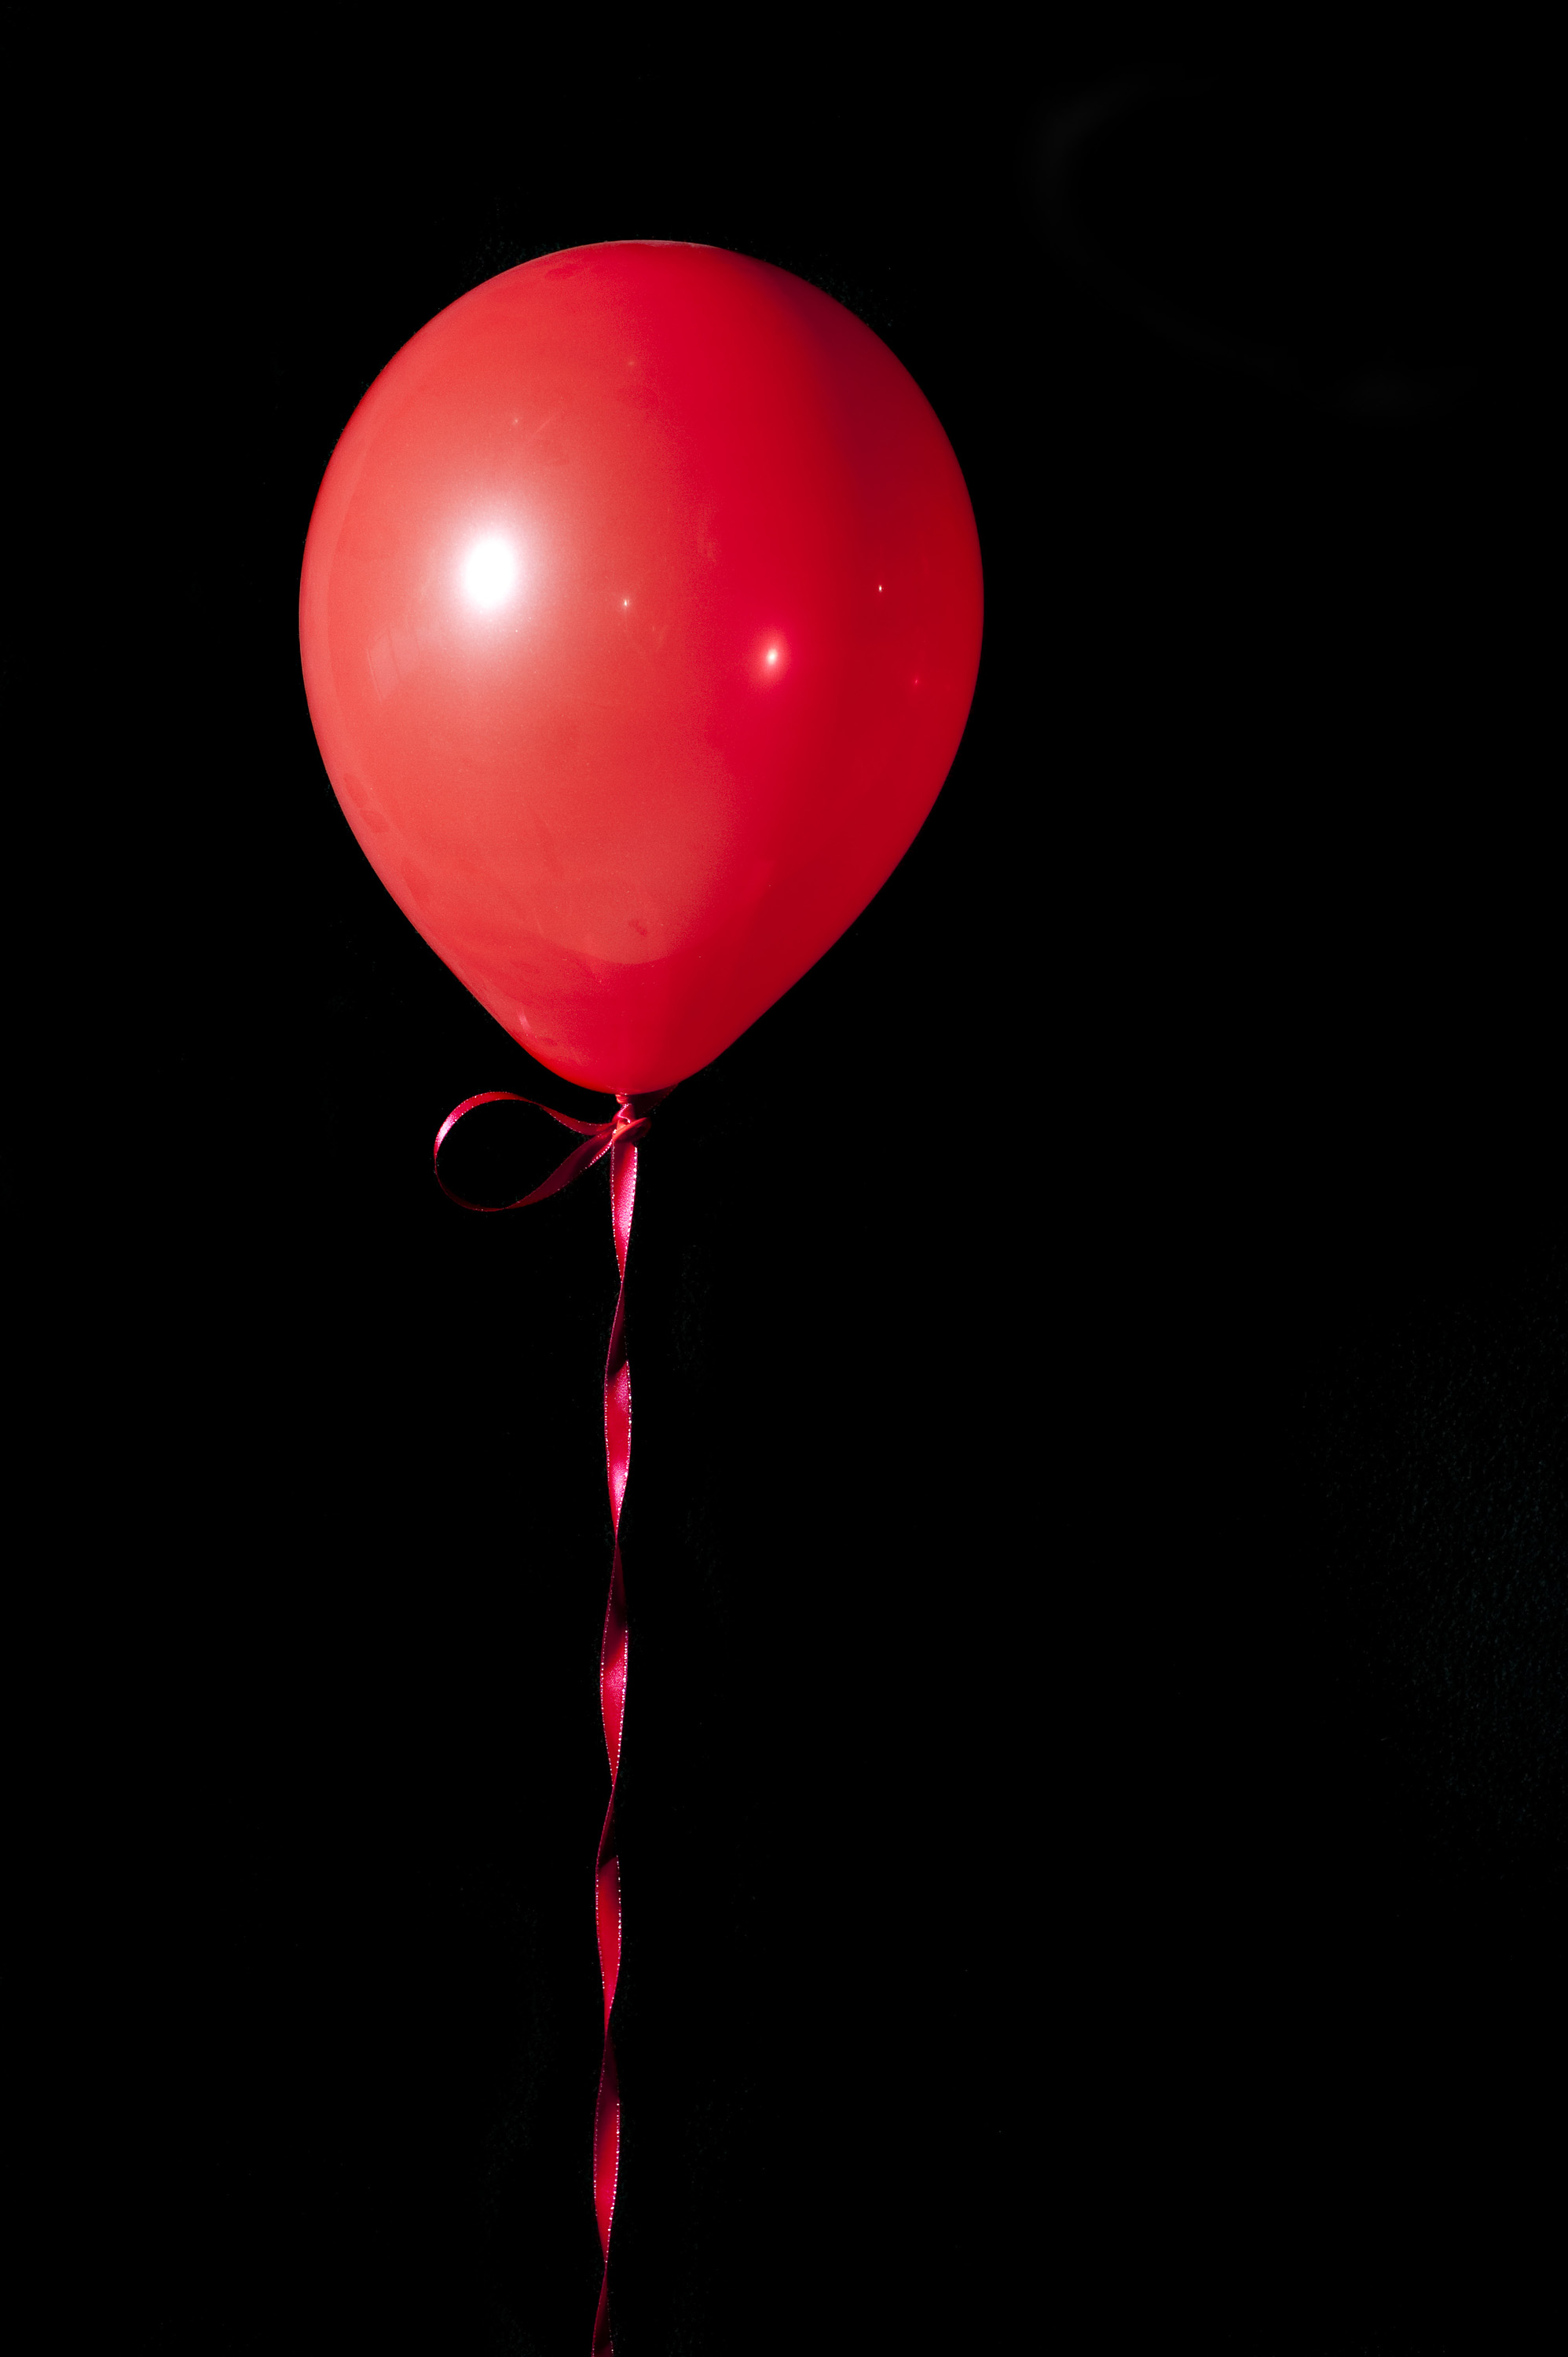 red floating balloon